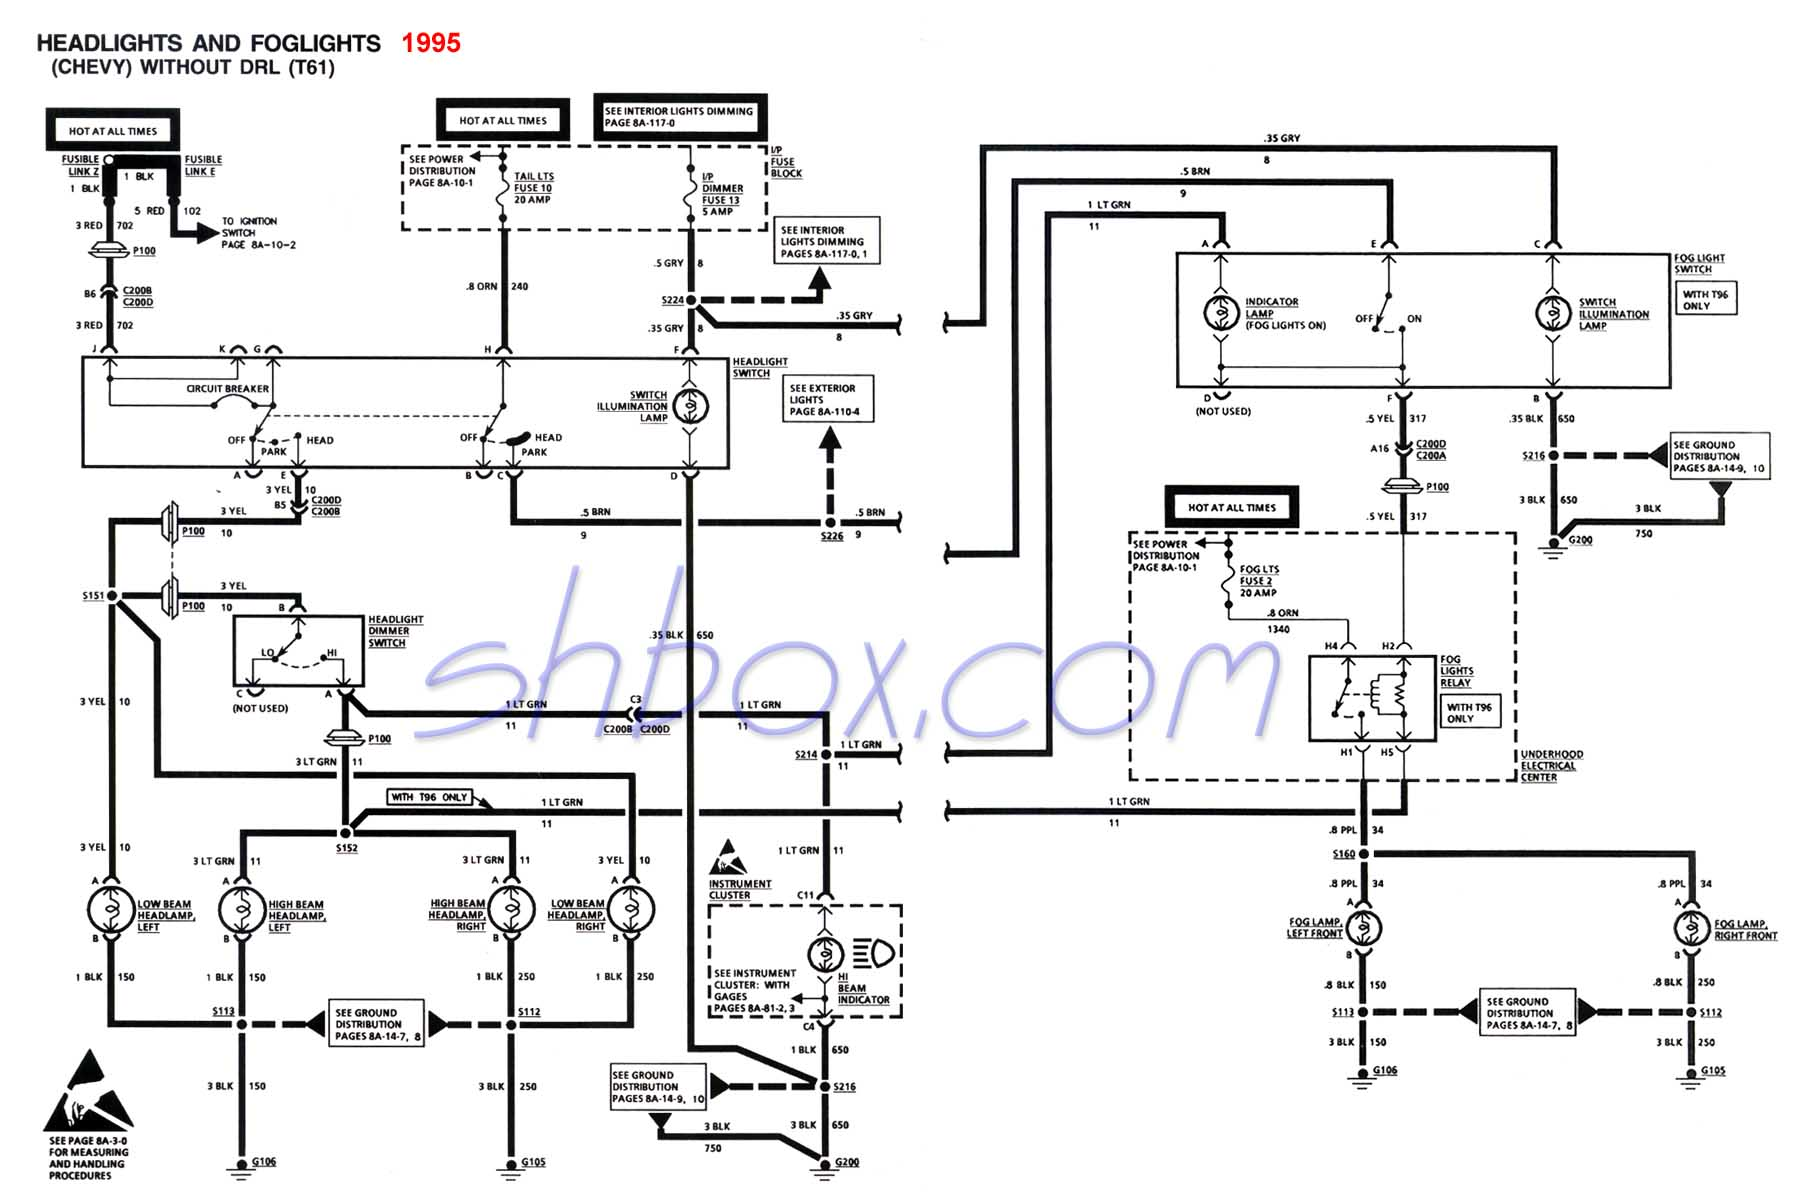 95 camaro wiring diagram example electrical wiring diagram u2022 rh cranejapan co